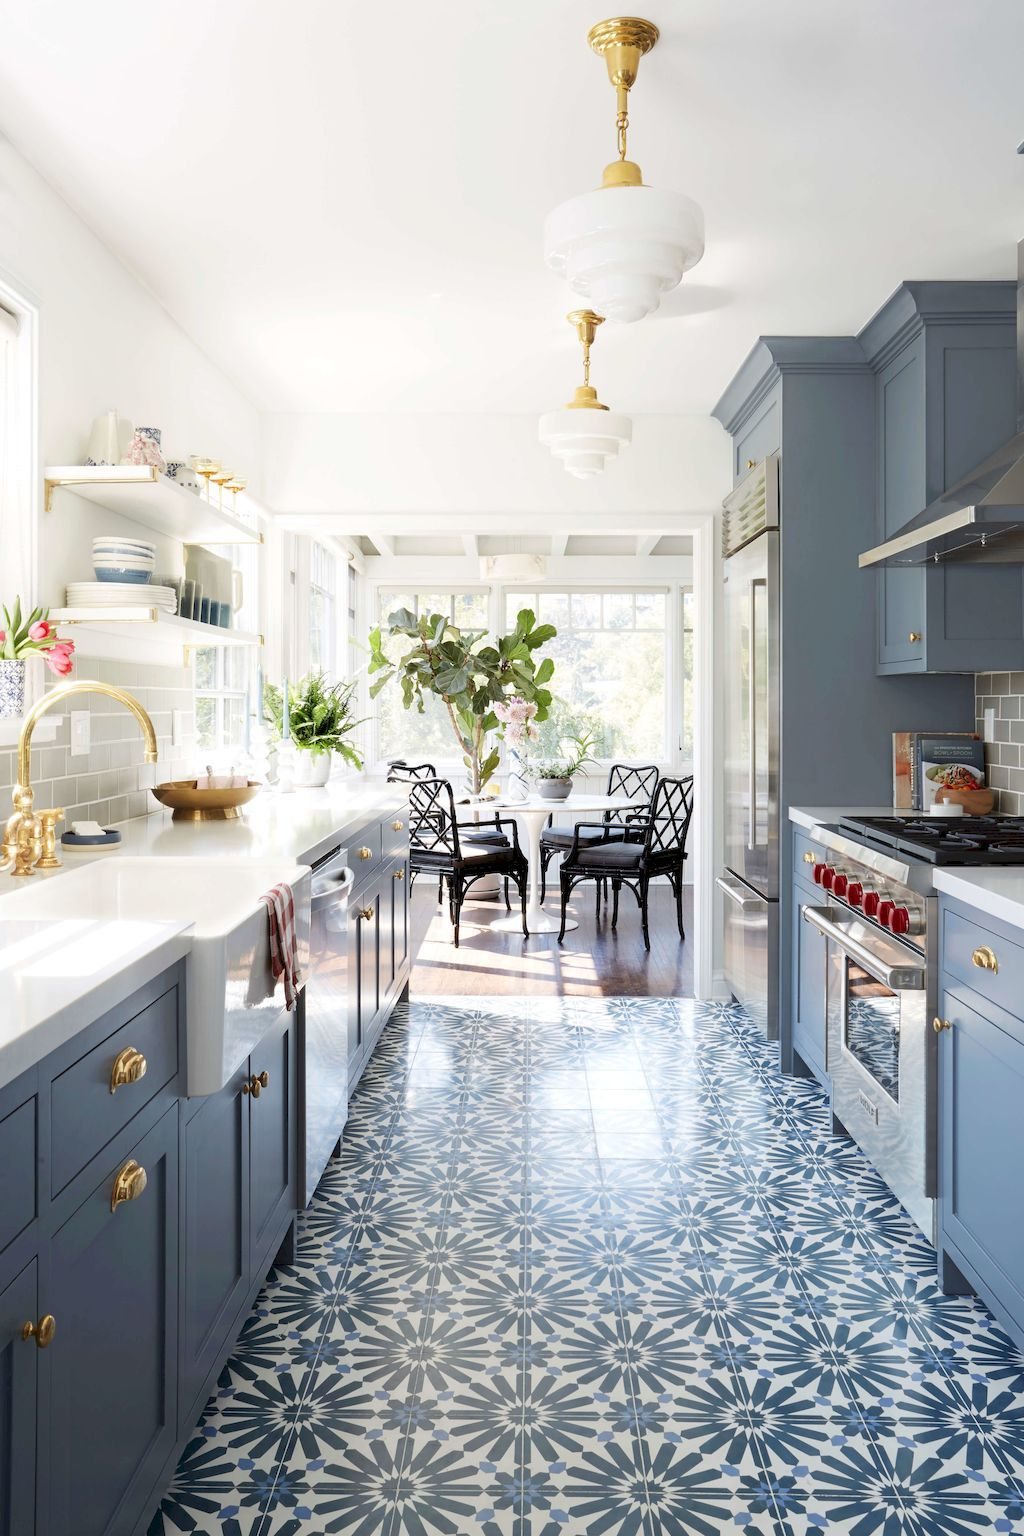 65 Gorgeous Small Kitchen Remodel Ideas | Esquineros, Sala de estar ...